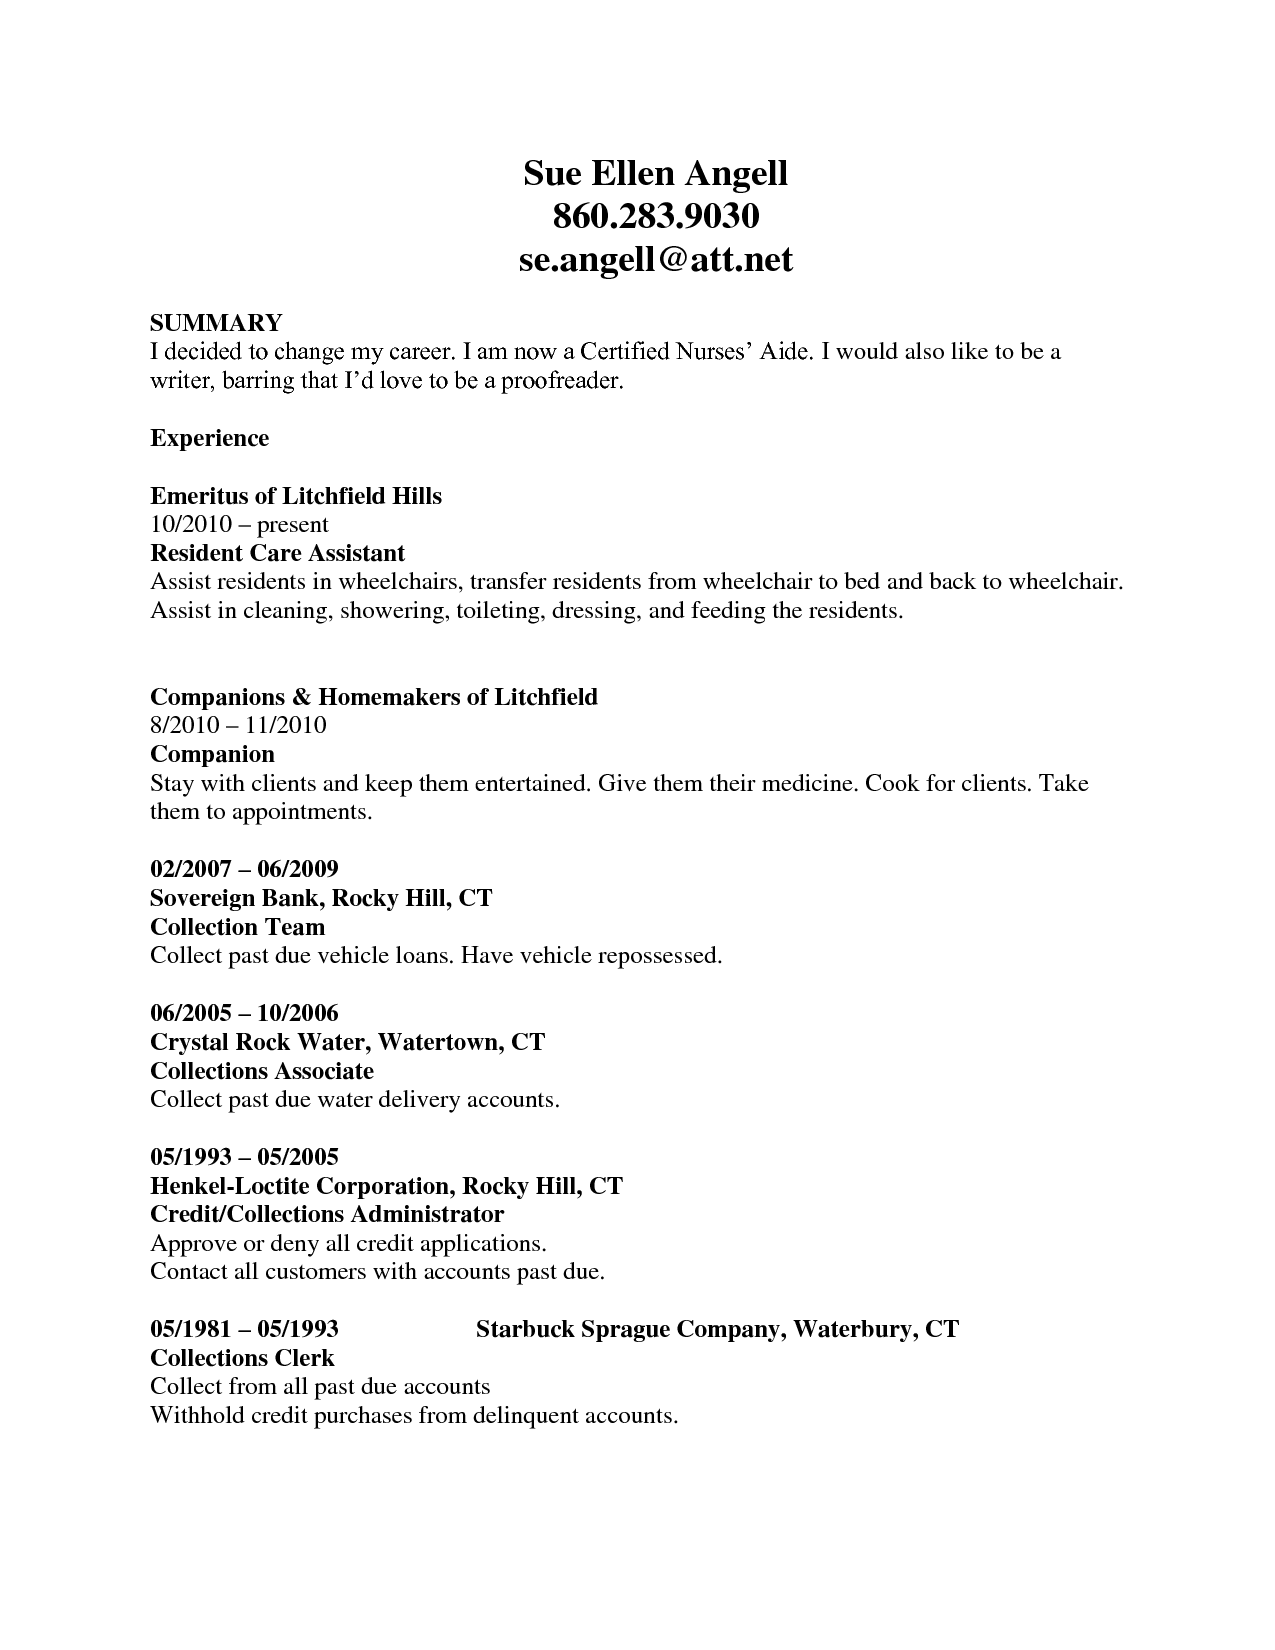 CNA Resume Example: Click To Zoom. CNA Resume Sample: ...  How To Write A Resume For A Job Example